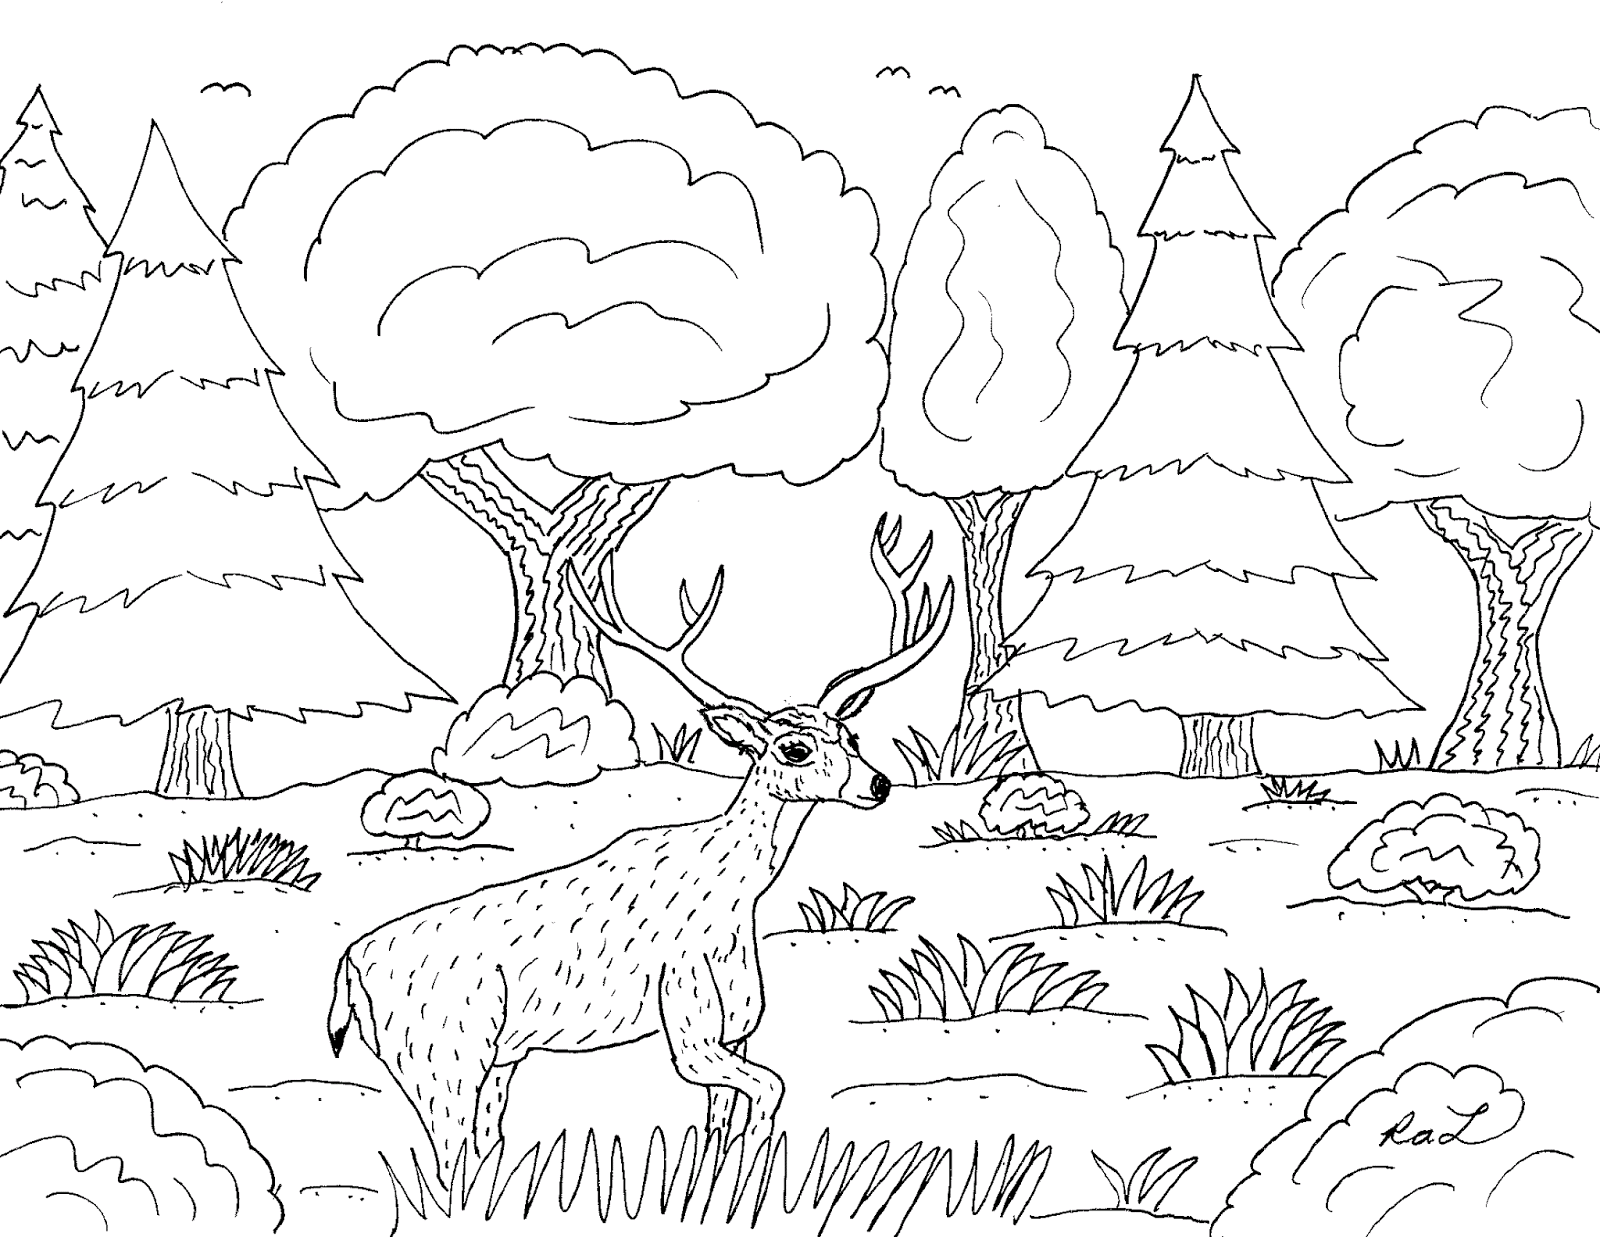 Robin\'s Great Coloring Pages: Deer Family of North America